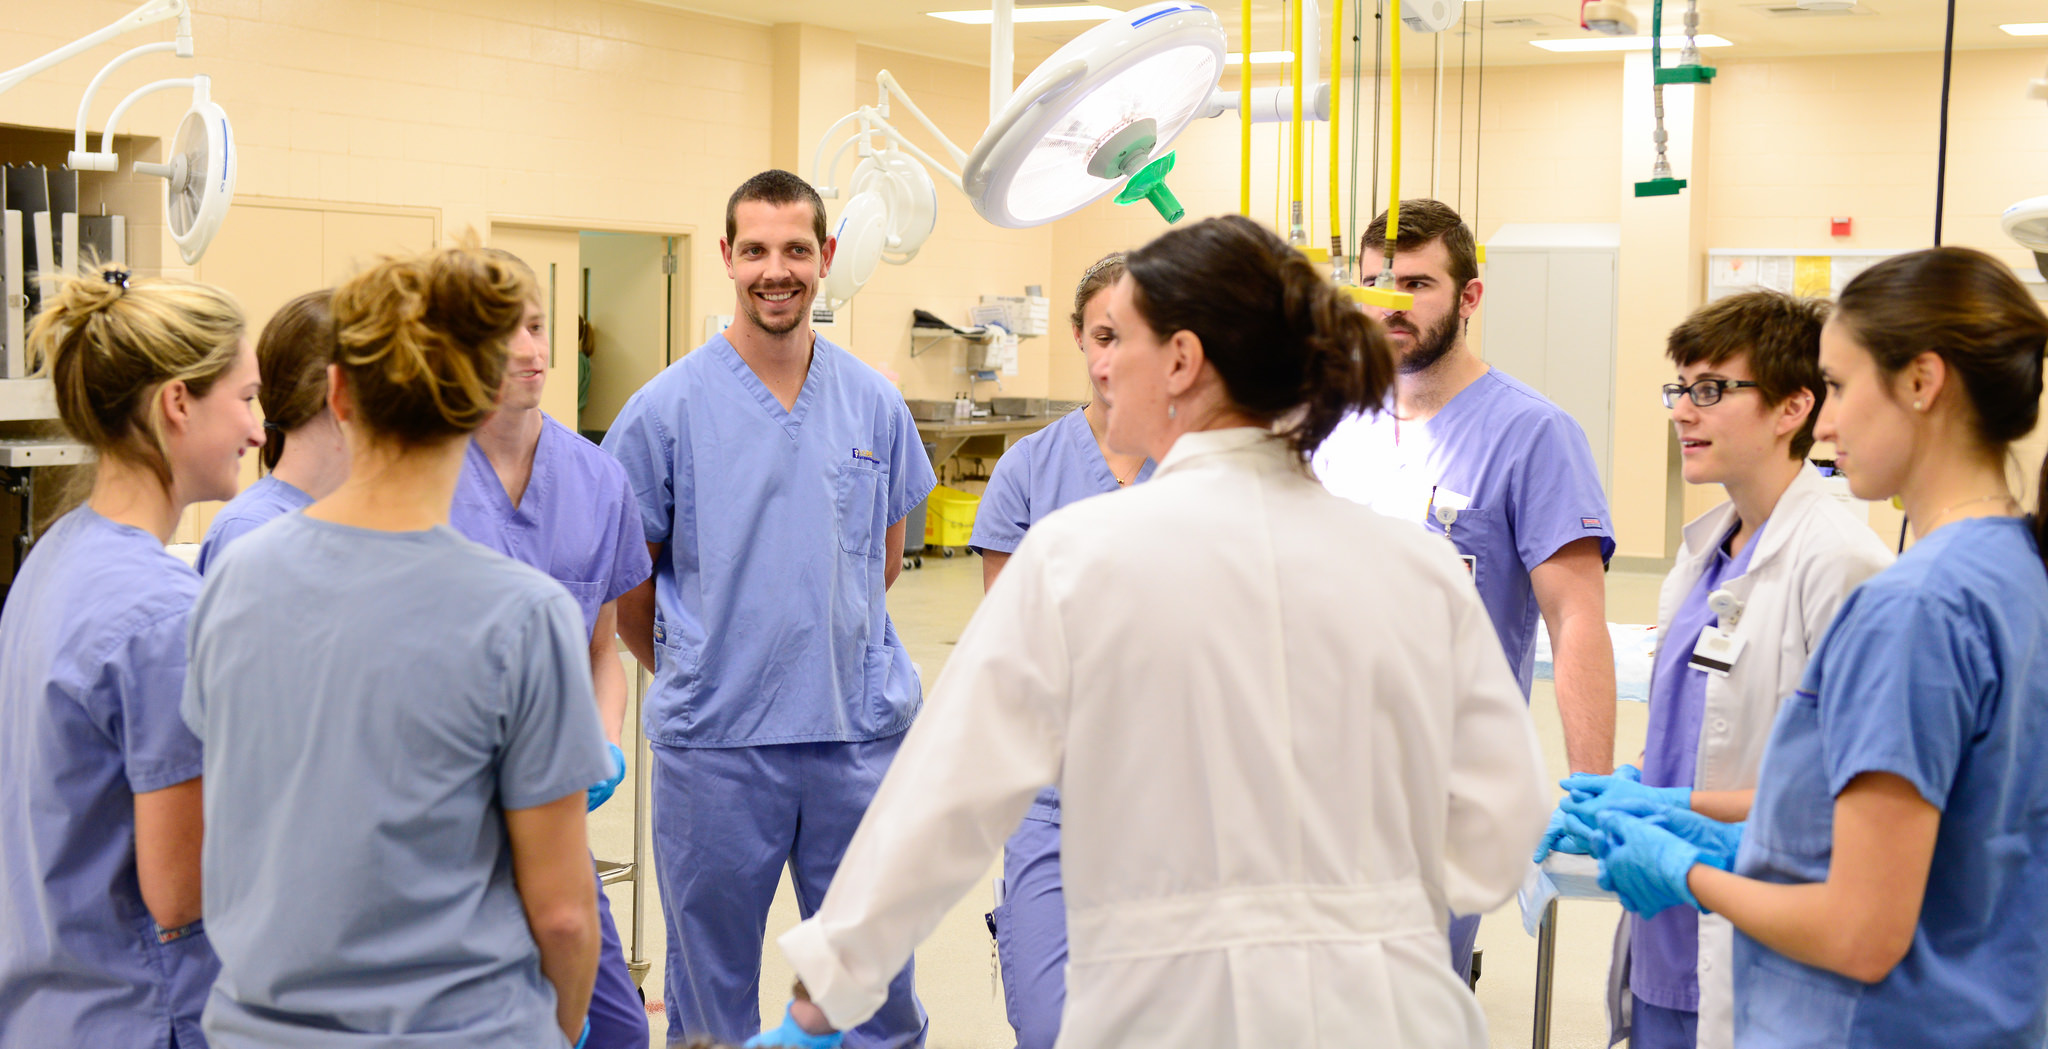 med students dating each other Avid is a course taken in addition to other classes where the students learn about postsecondary opportunities  and medical assisting each profession will be represented by 1-3 uw students .